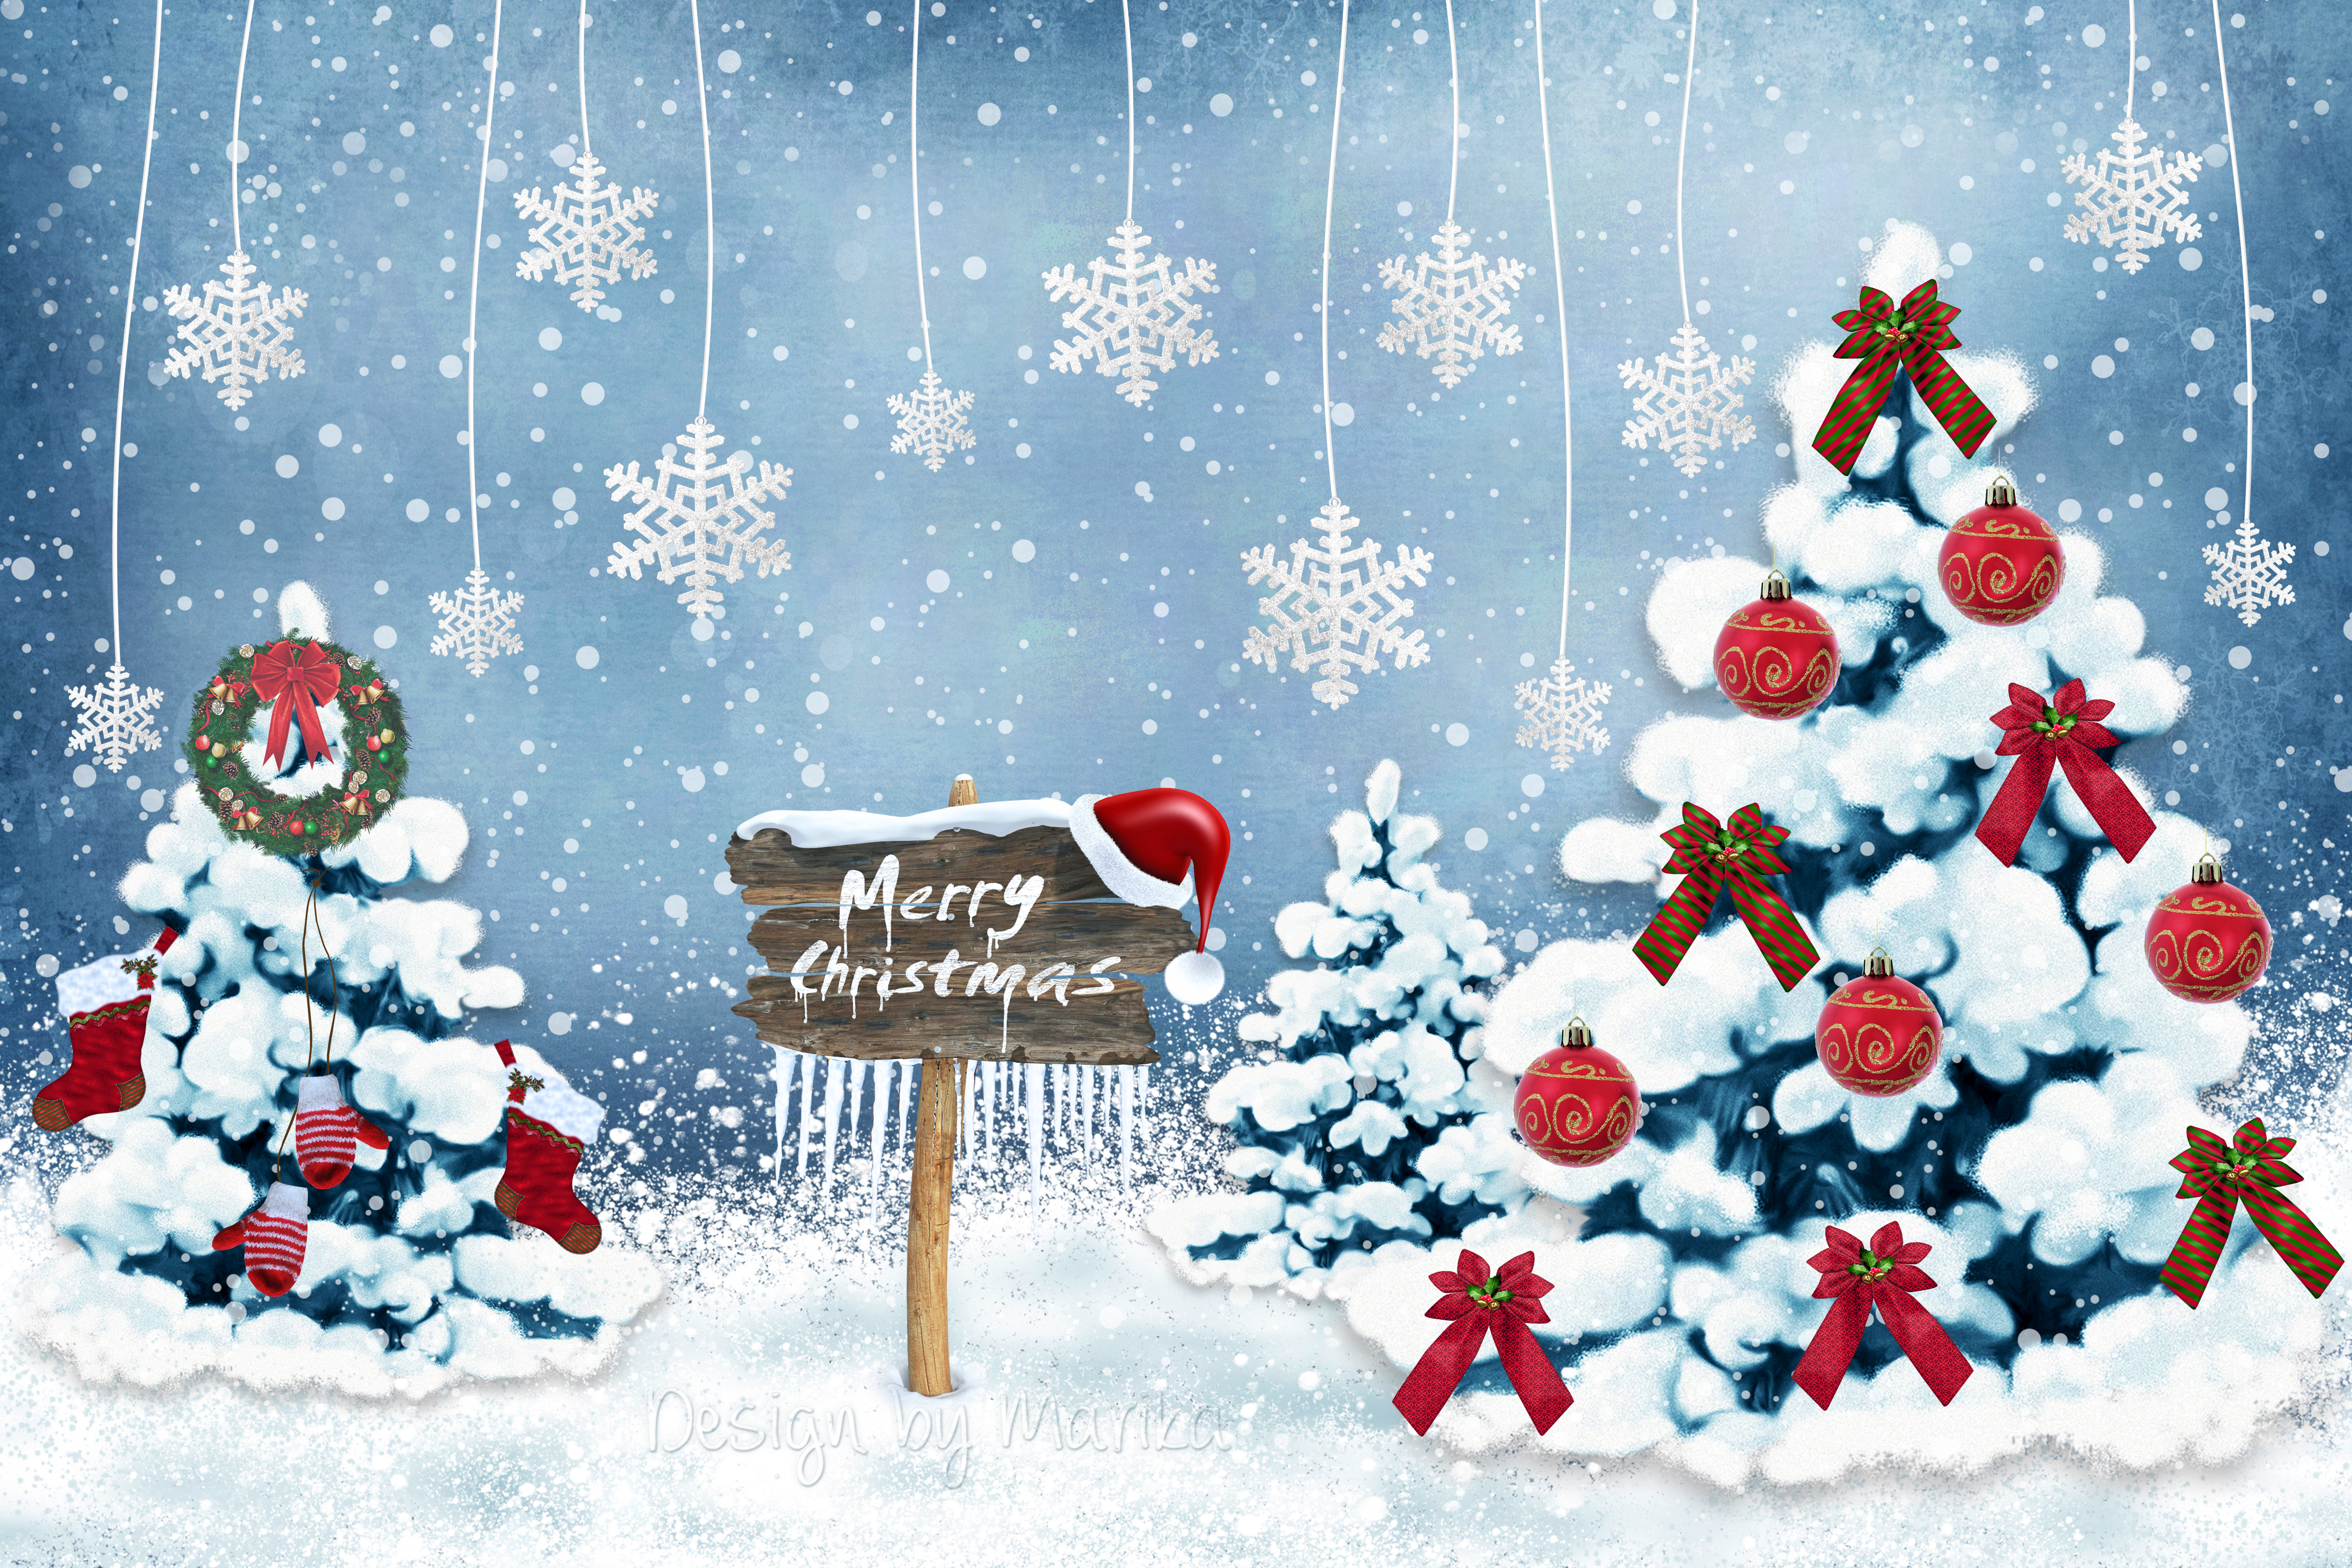 140480 download wallpaper Holidays, New Year, Christmas, Postcard, Snowflakes, Decorations, Fir-Trees screensavers and pictures for free